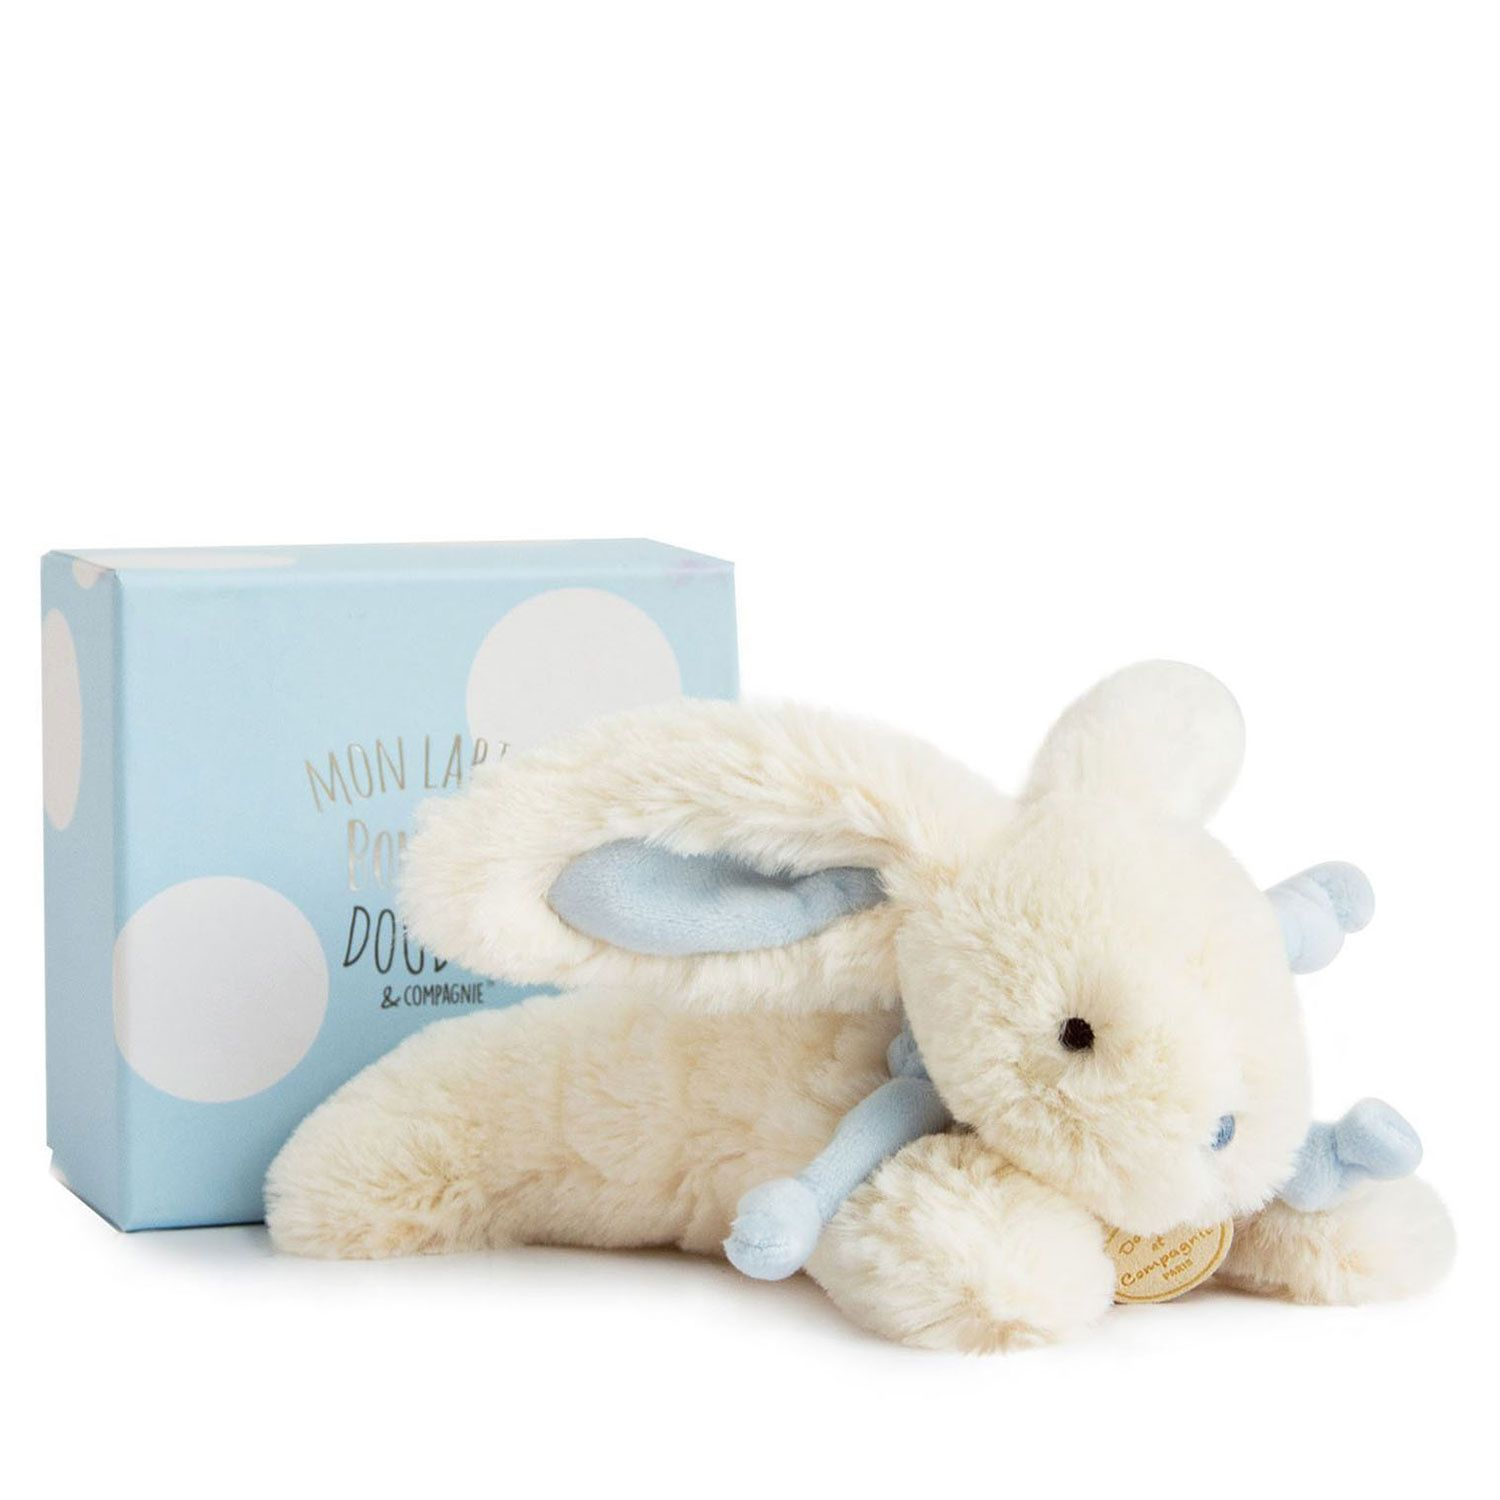 Picture of Doudou et Compagnie 1238 baby accessory light blue